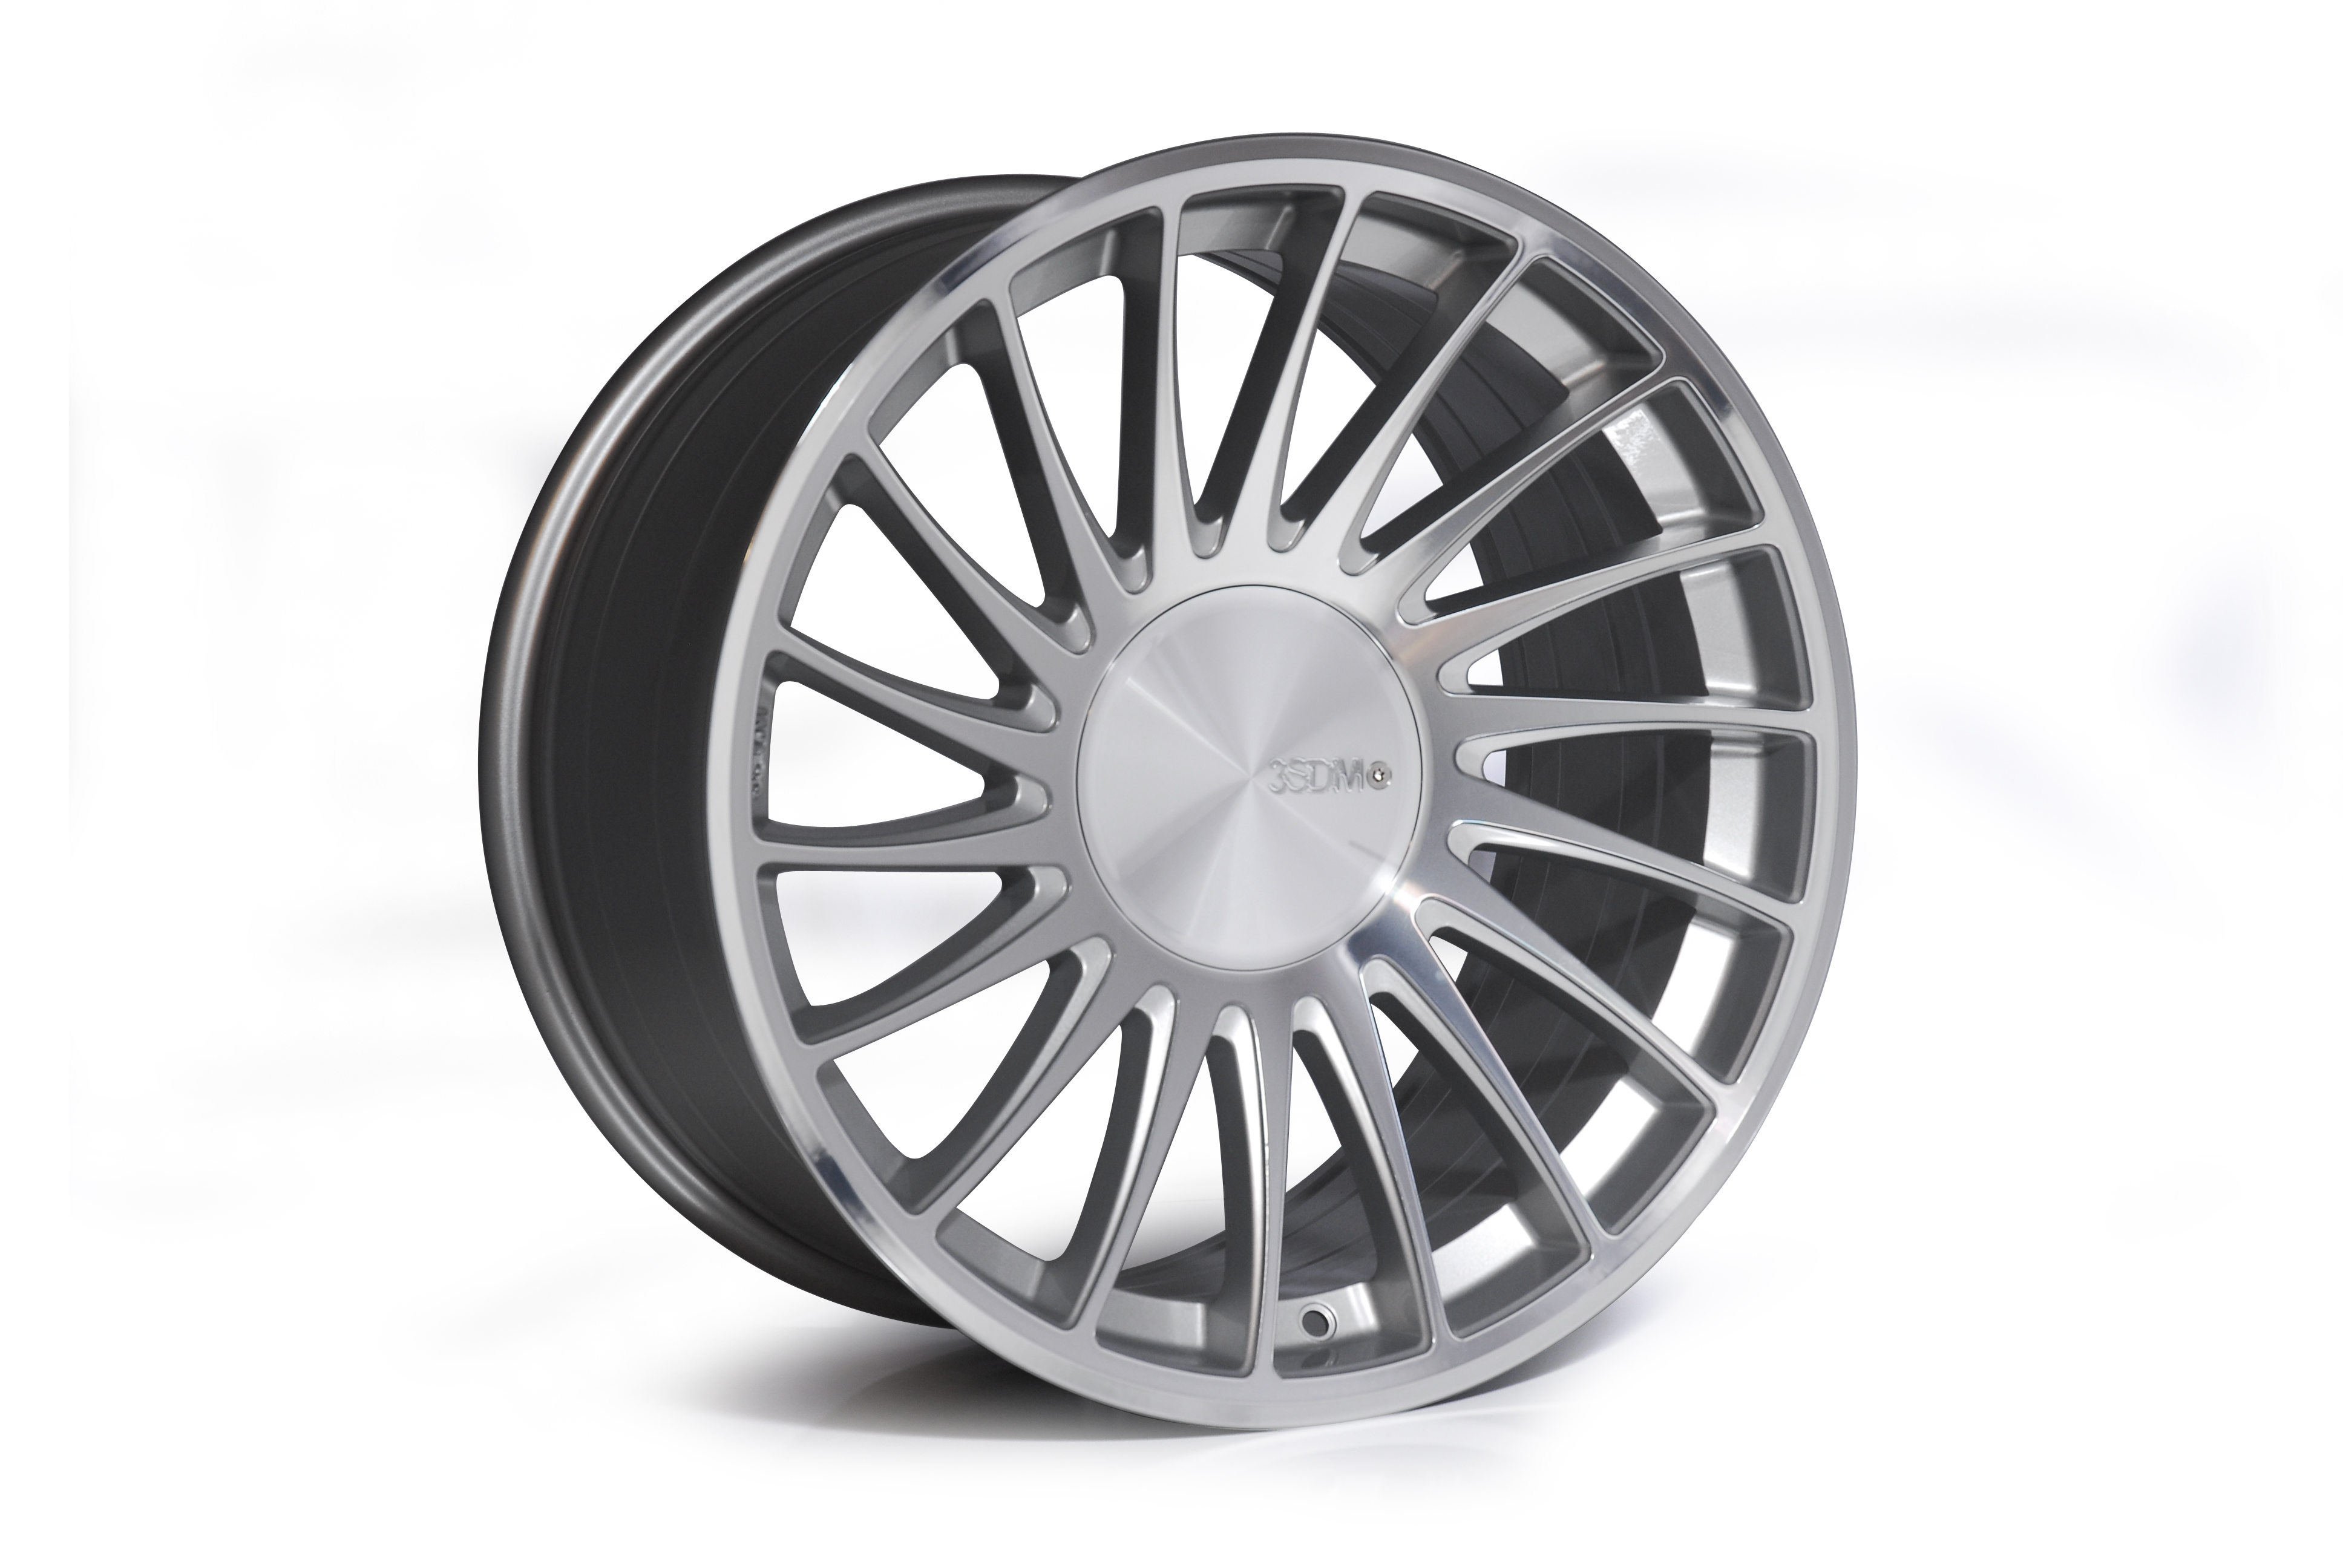 "NEW 20"" 3SDM 0.04 ALLOY WHEELS IN SILVER POLISHED WITH DEEPER CONCAVE 10.5"" REAR et25/et27"